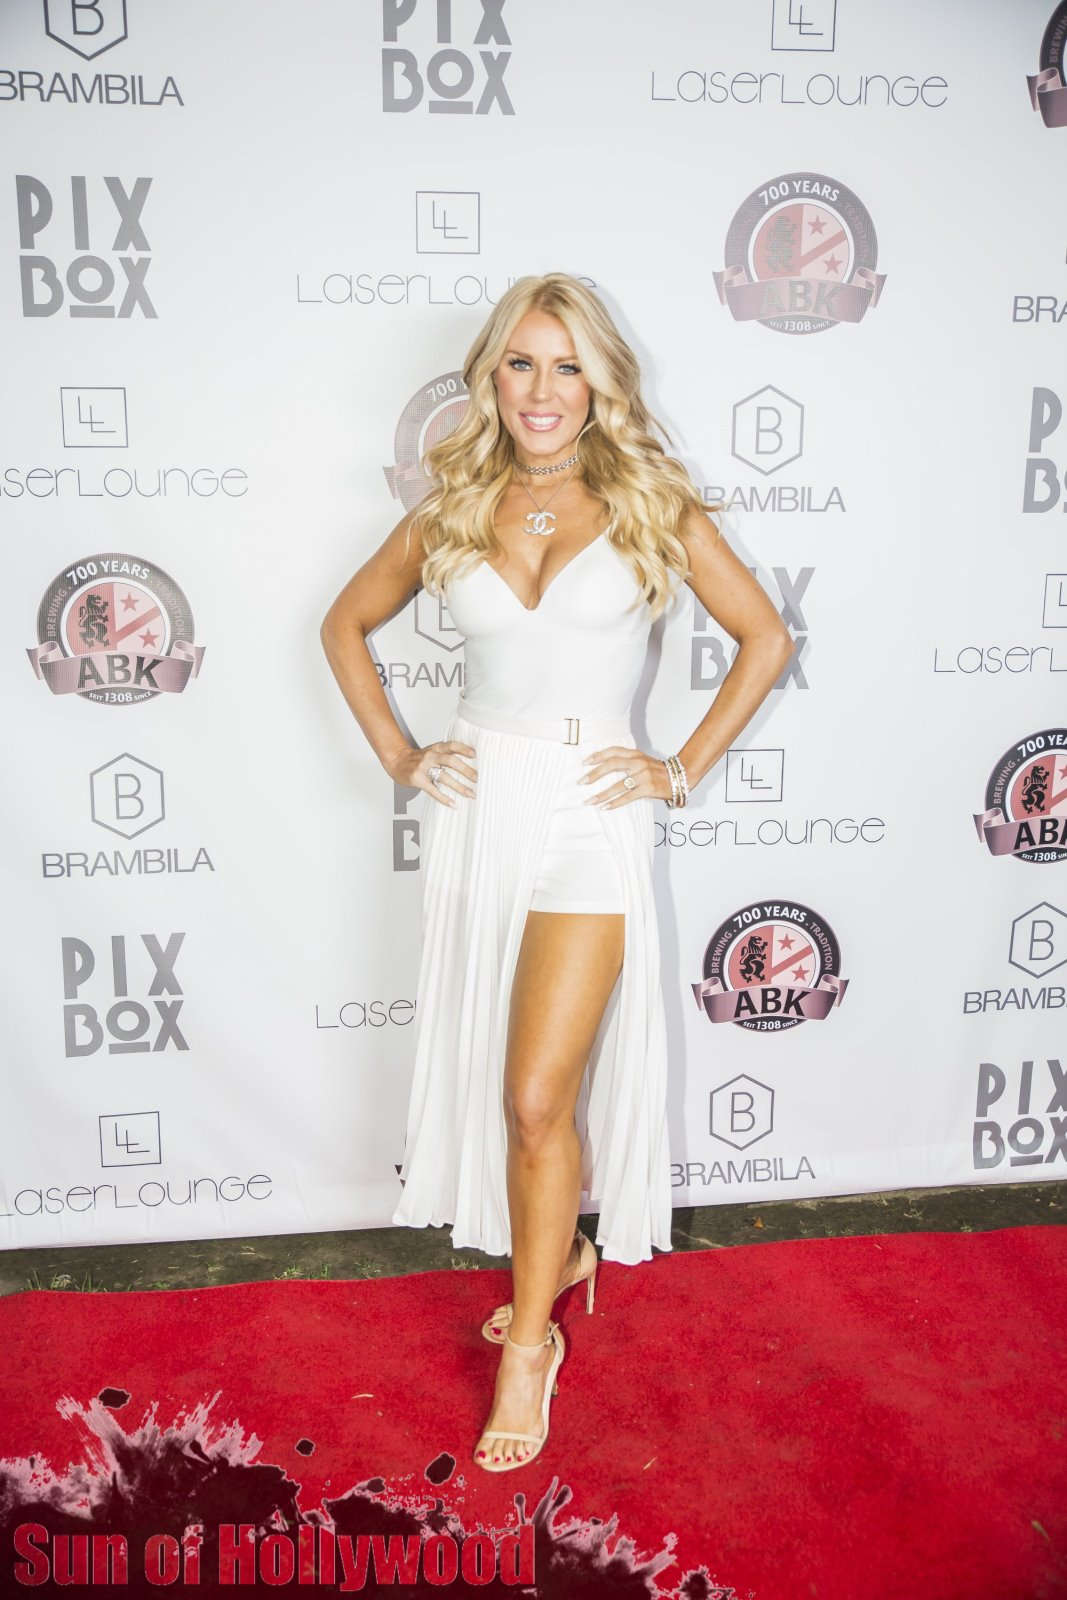 Gretchen Rossi Got That White Gold Shimmer